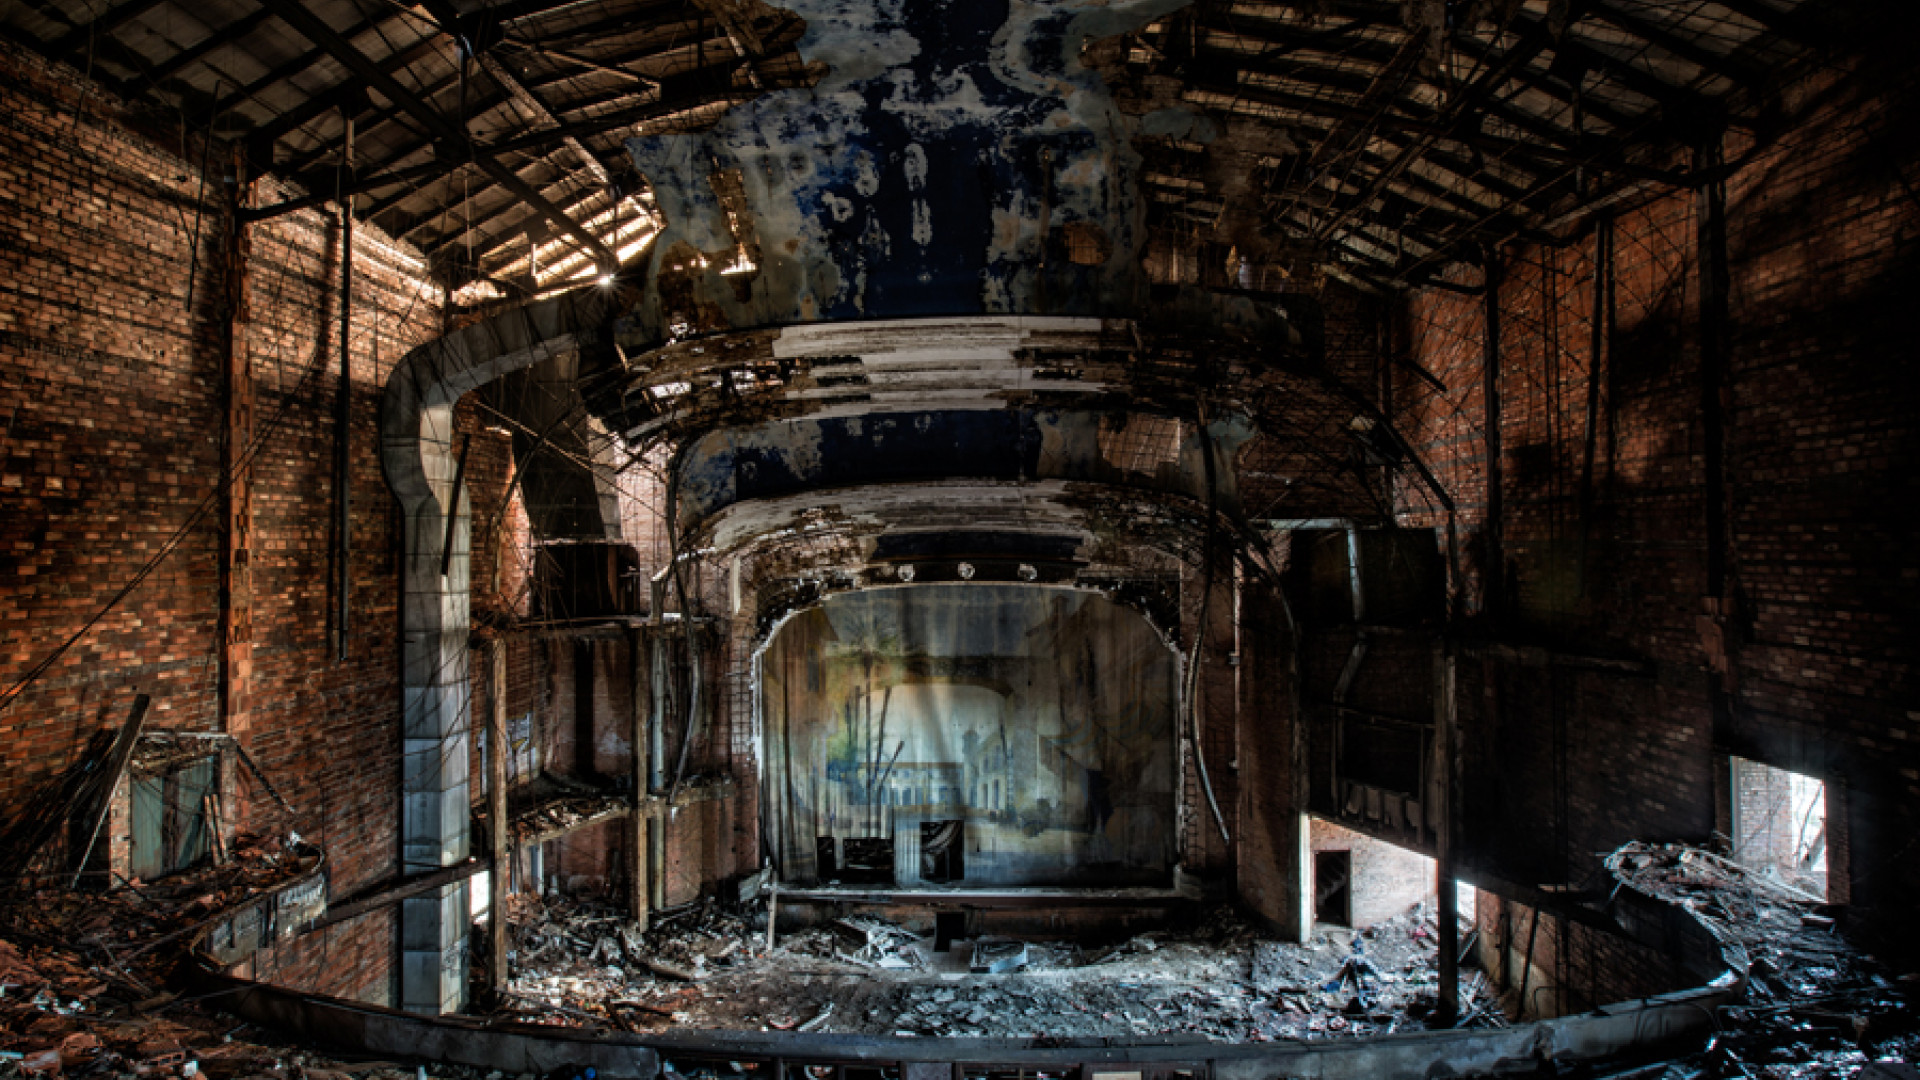 Decayed interior of Palace Theatre, Gary, Indiana, USA